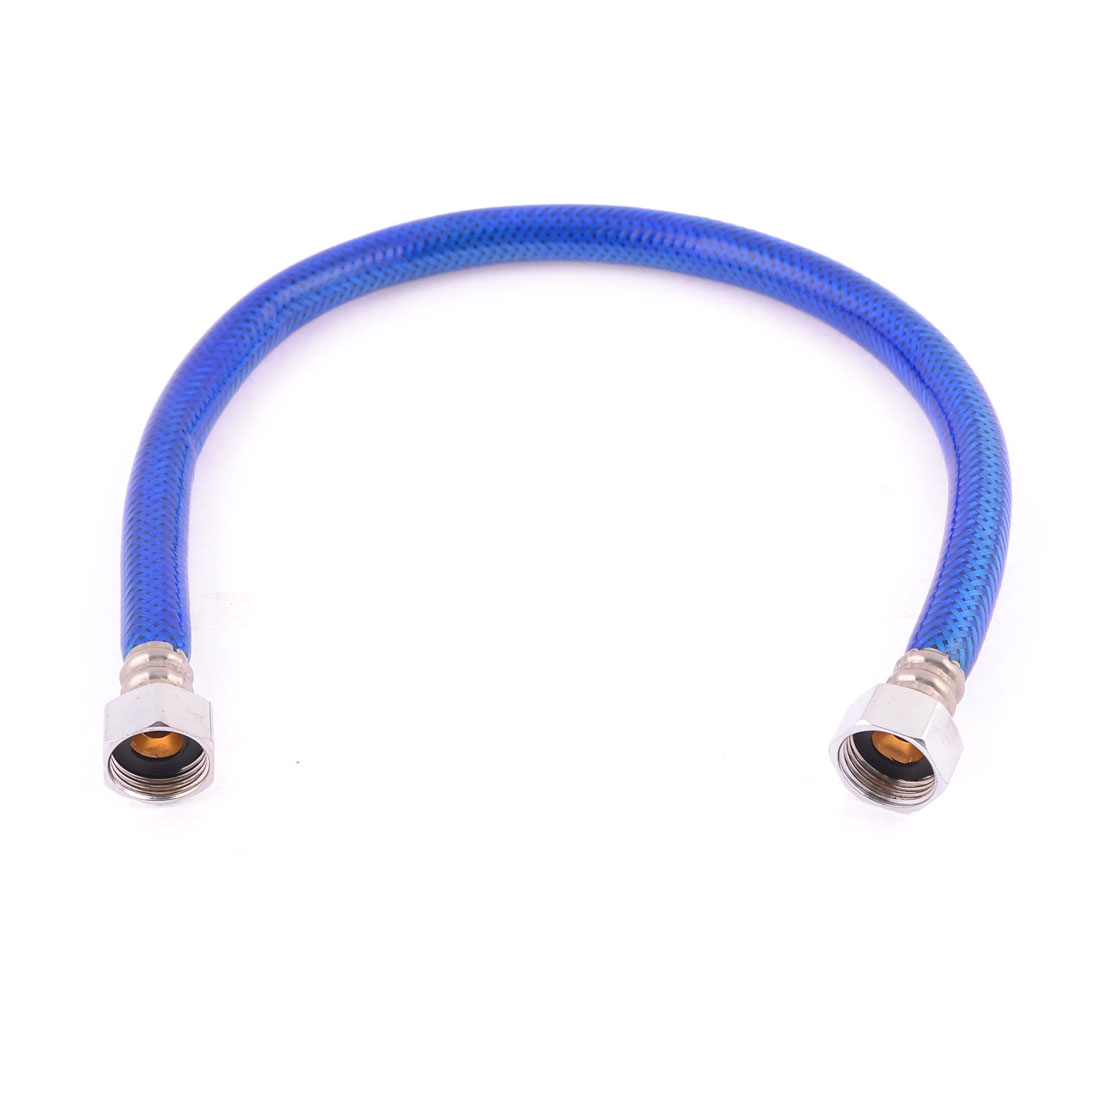 19mm Threaded Flexible Shower Hose Water Heater Connector Pipe Blue 50cm Long Discount 50(China (Mainland))